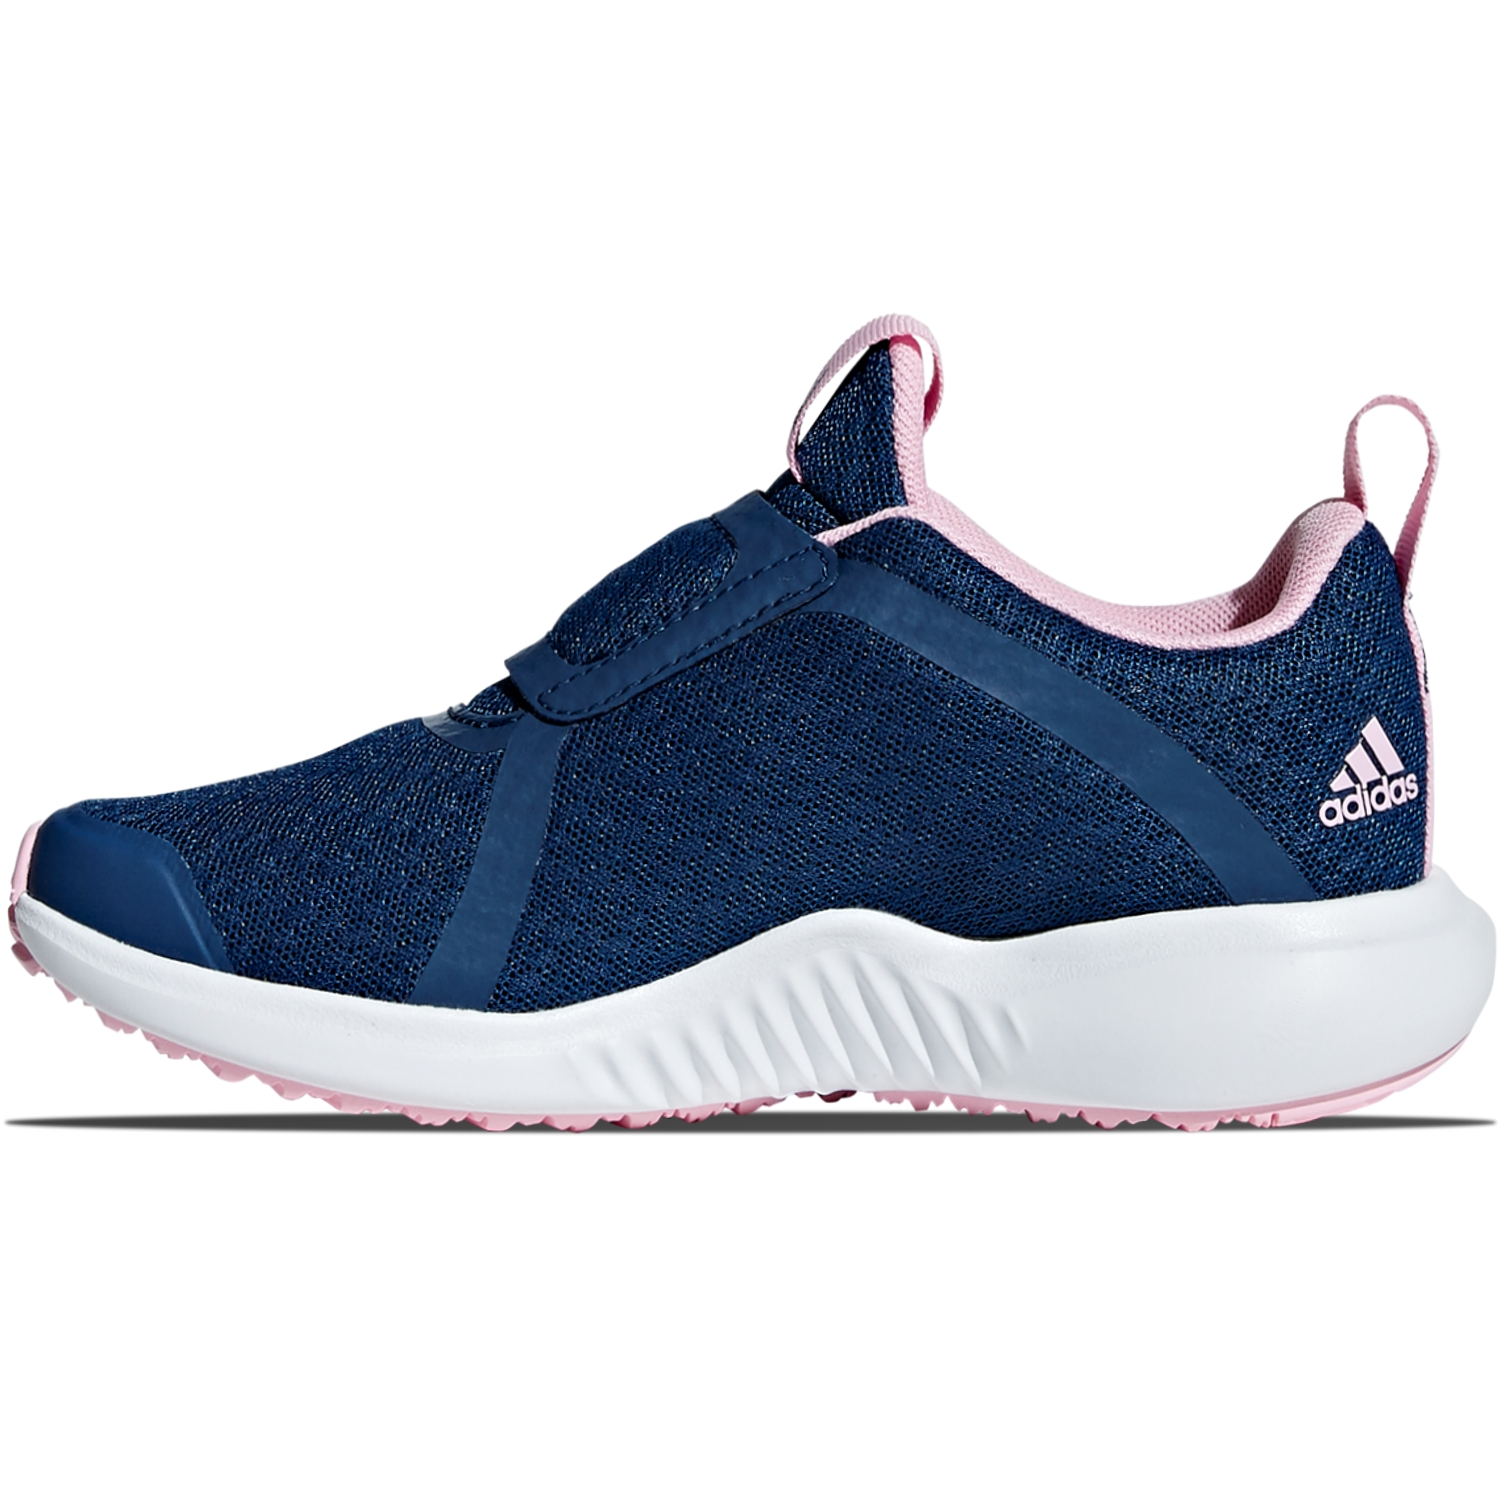 separation shoes 5566e 910ba buty fortarun adidas pl